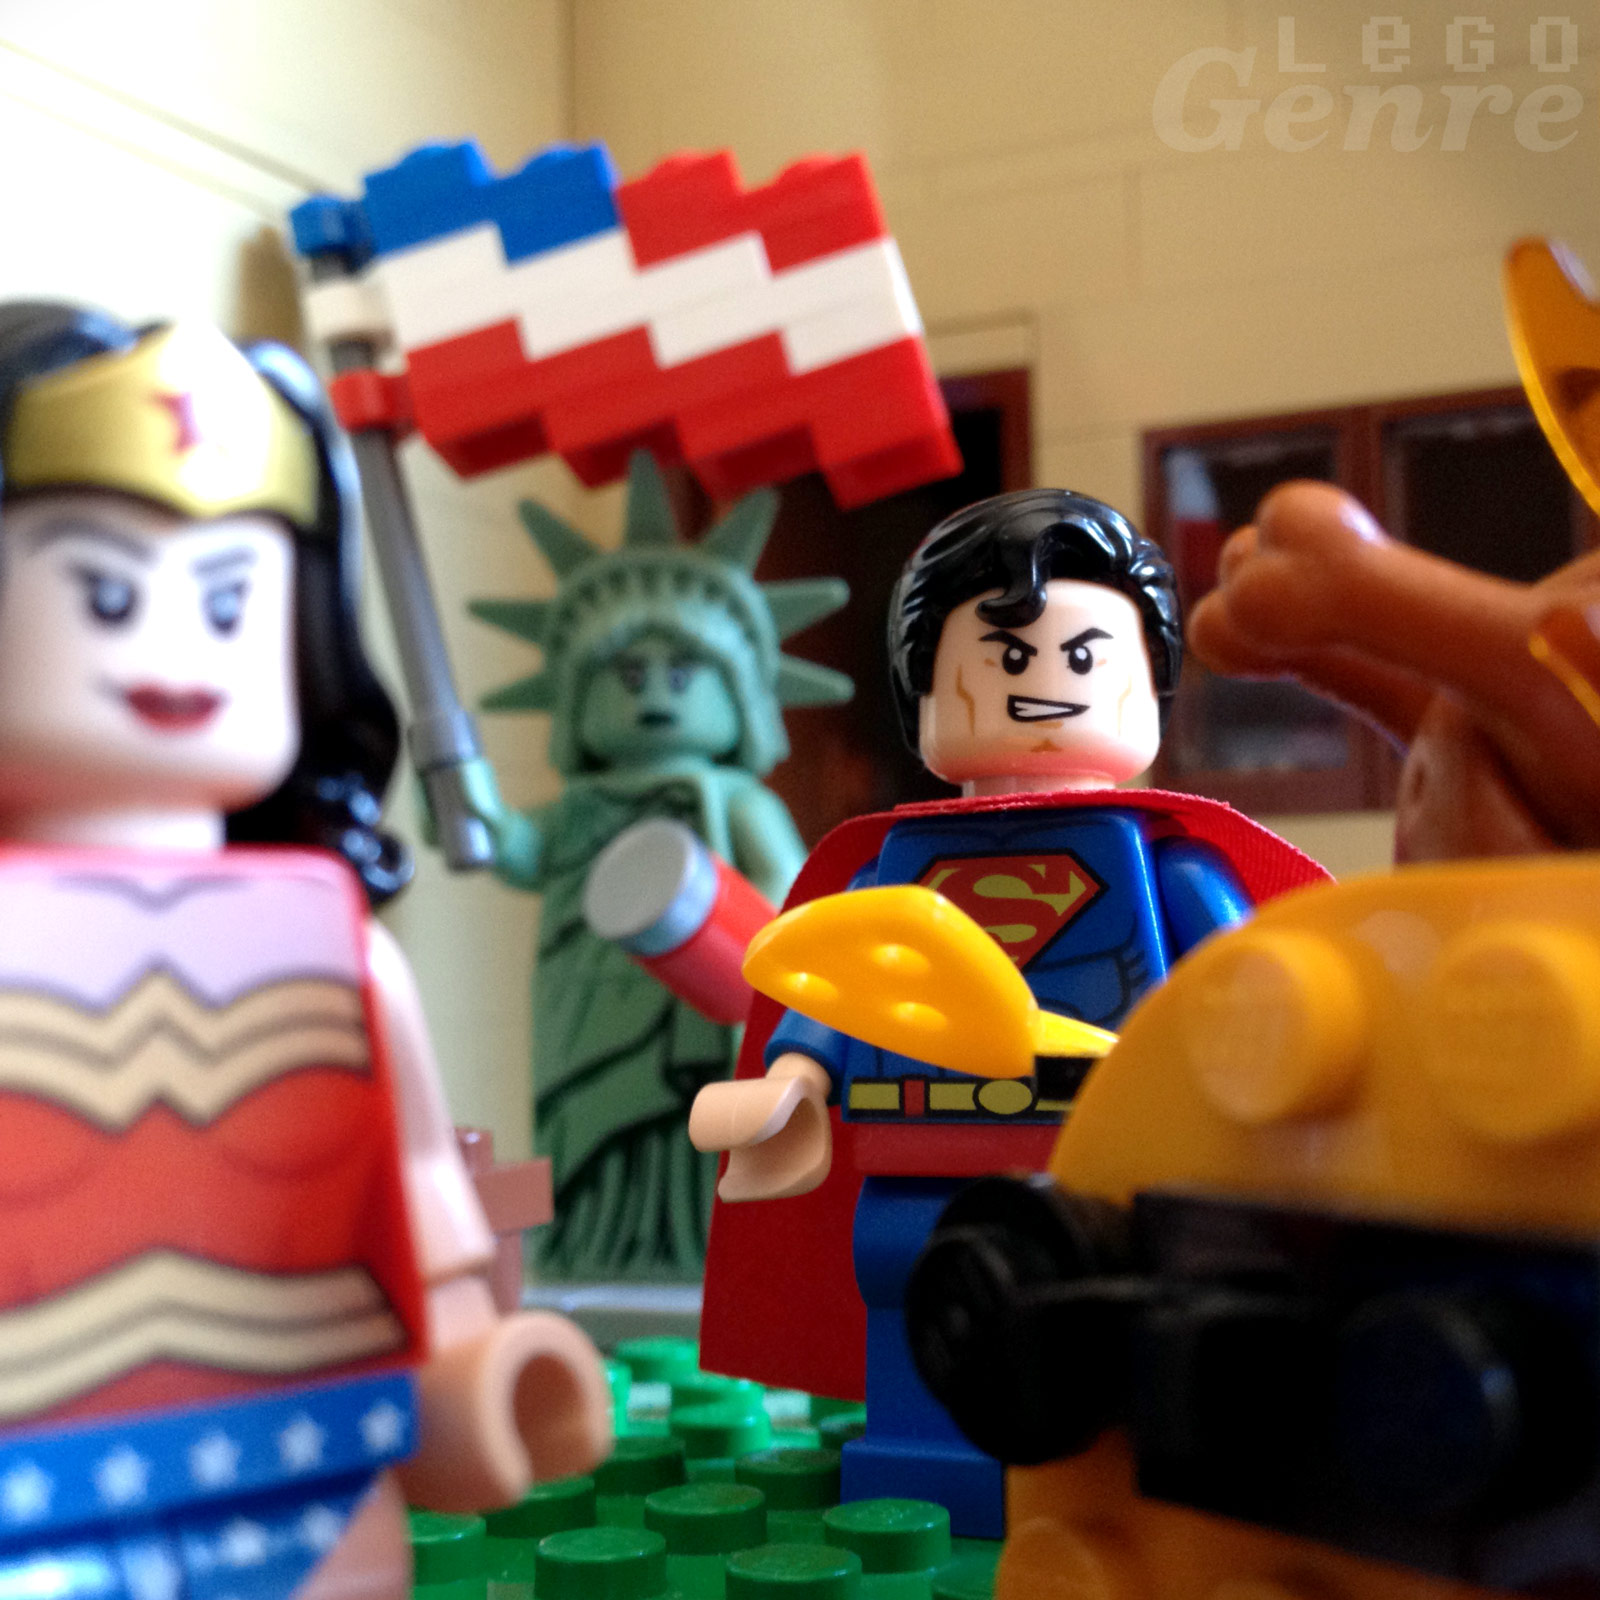 LegoGenre: Fourth of July